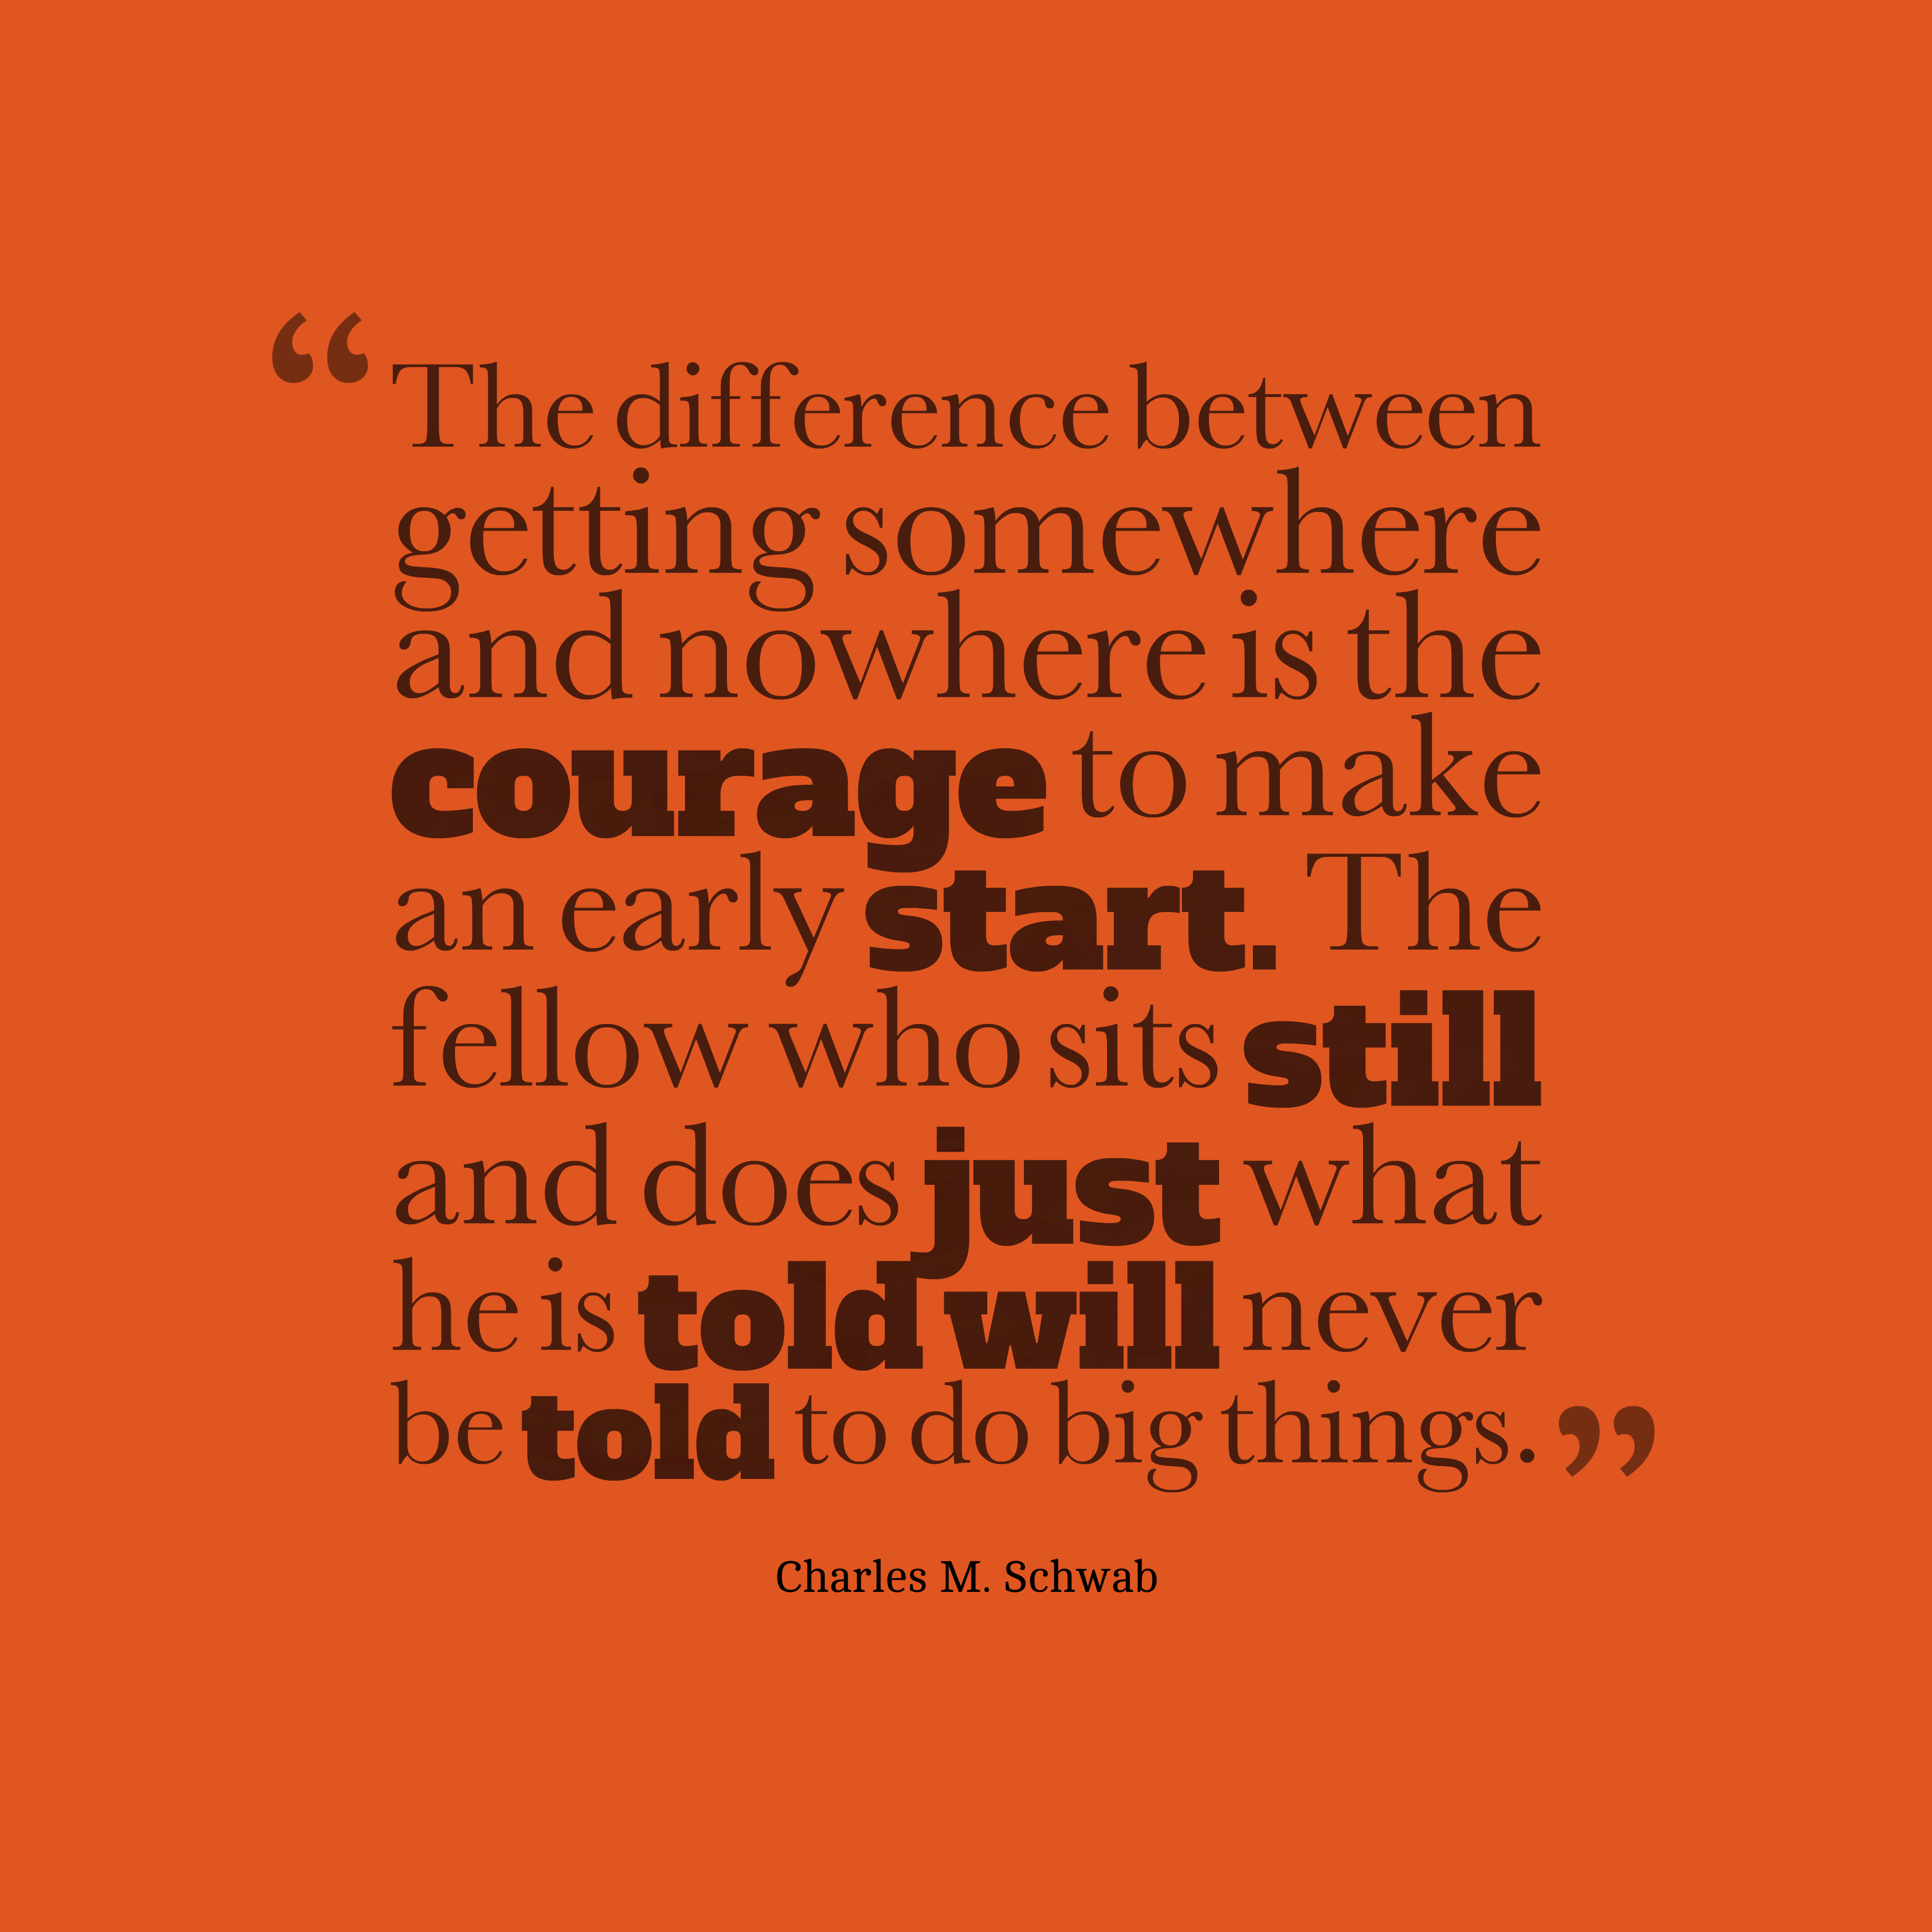 Quotes image of The difference between getting somewhere and nowhere is the courage to make an early start. The fellow who sits still and does just what he is told will never be told to do big things.